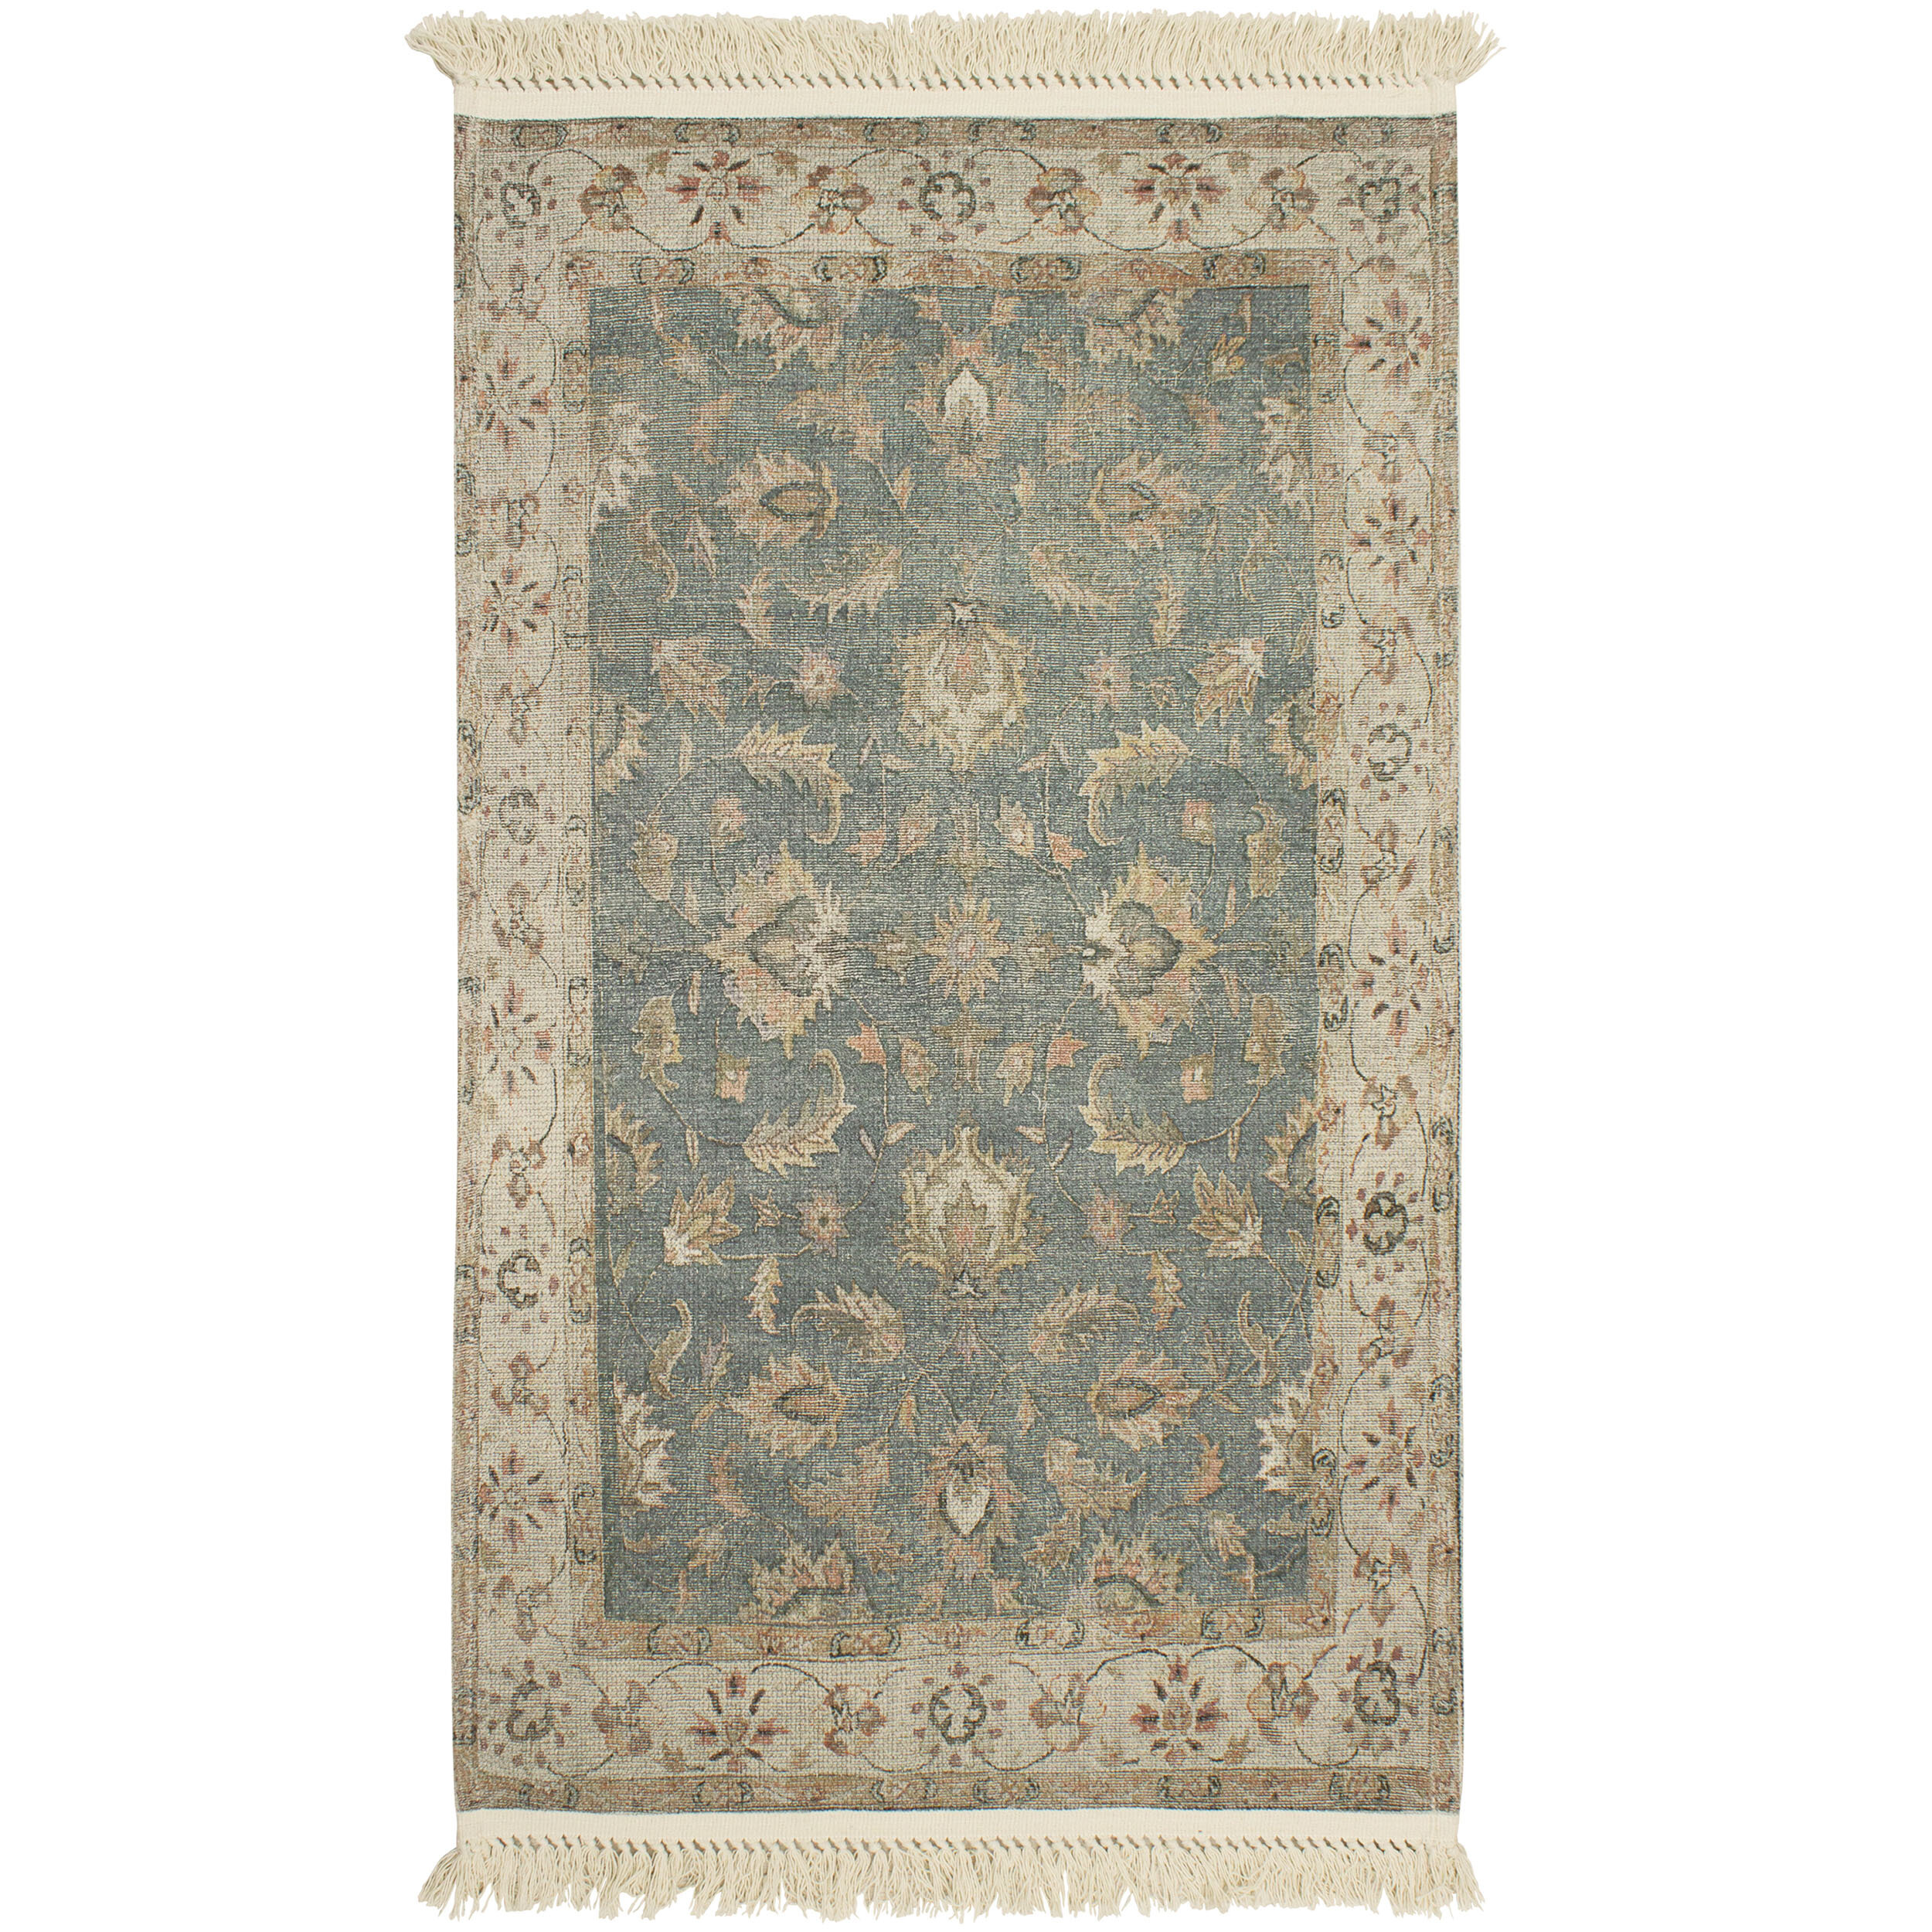 Lipinski Vegetable Dyed Cotton Brown Green Area Rug